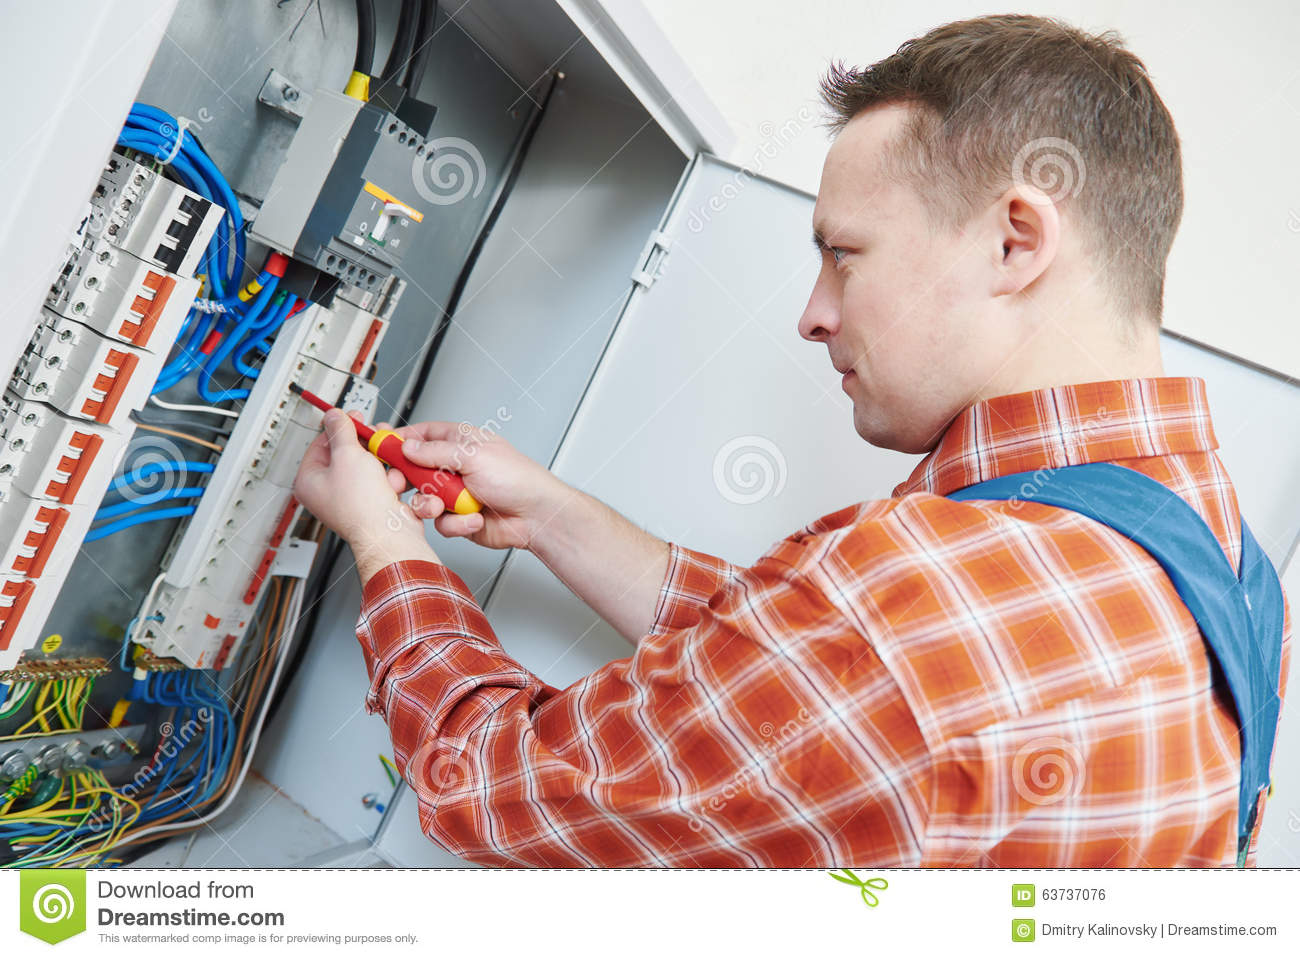 Electrician Works With Screwdriver In Fuse Box Stock Photo - Image